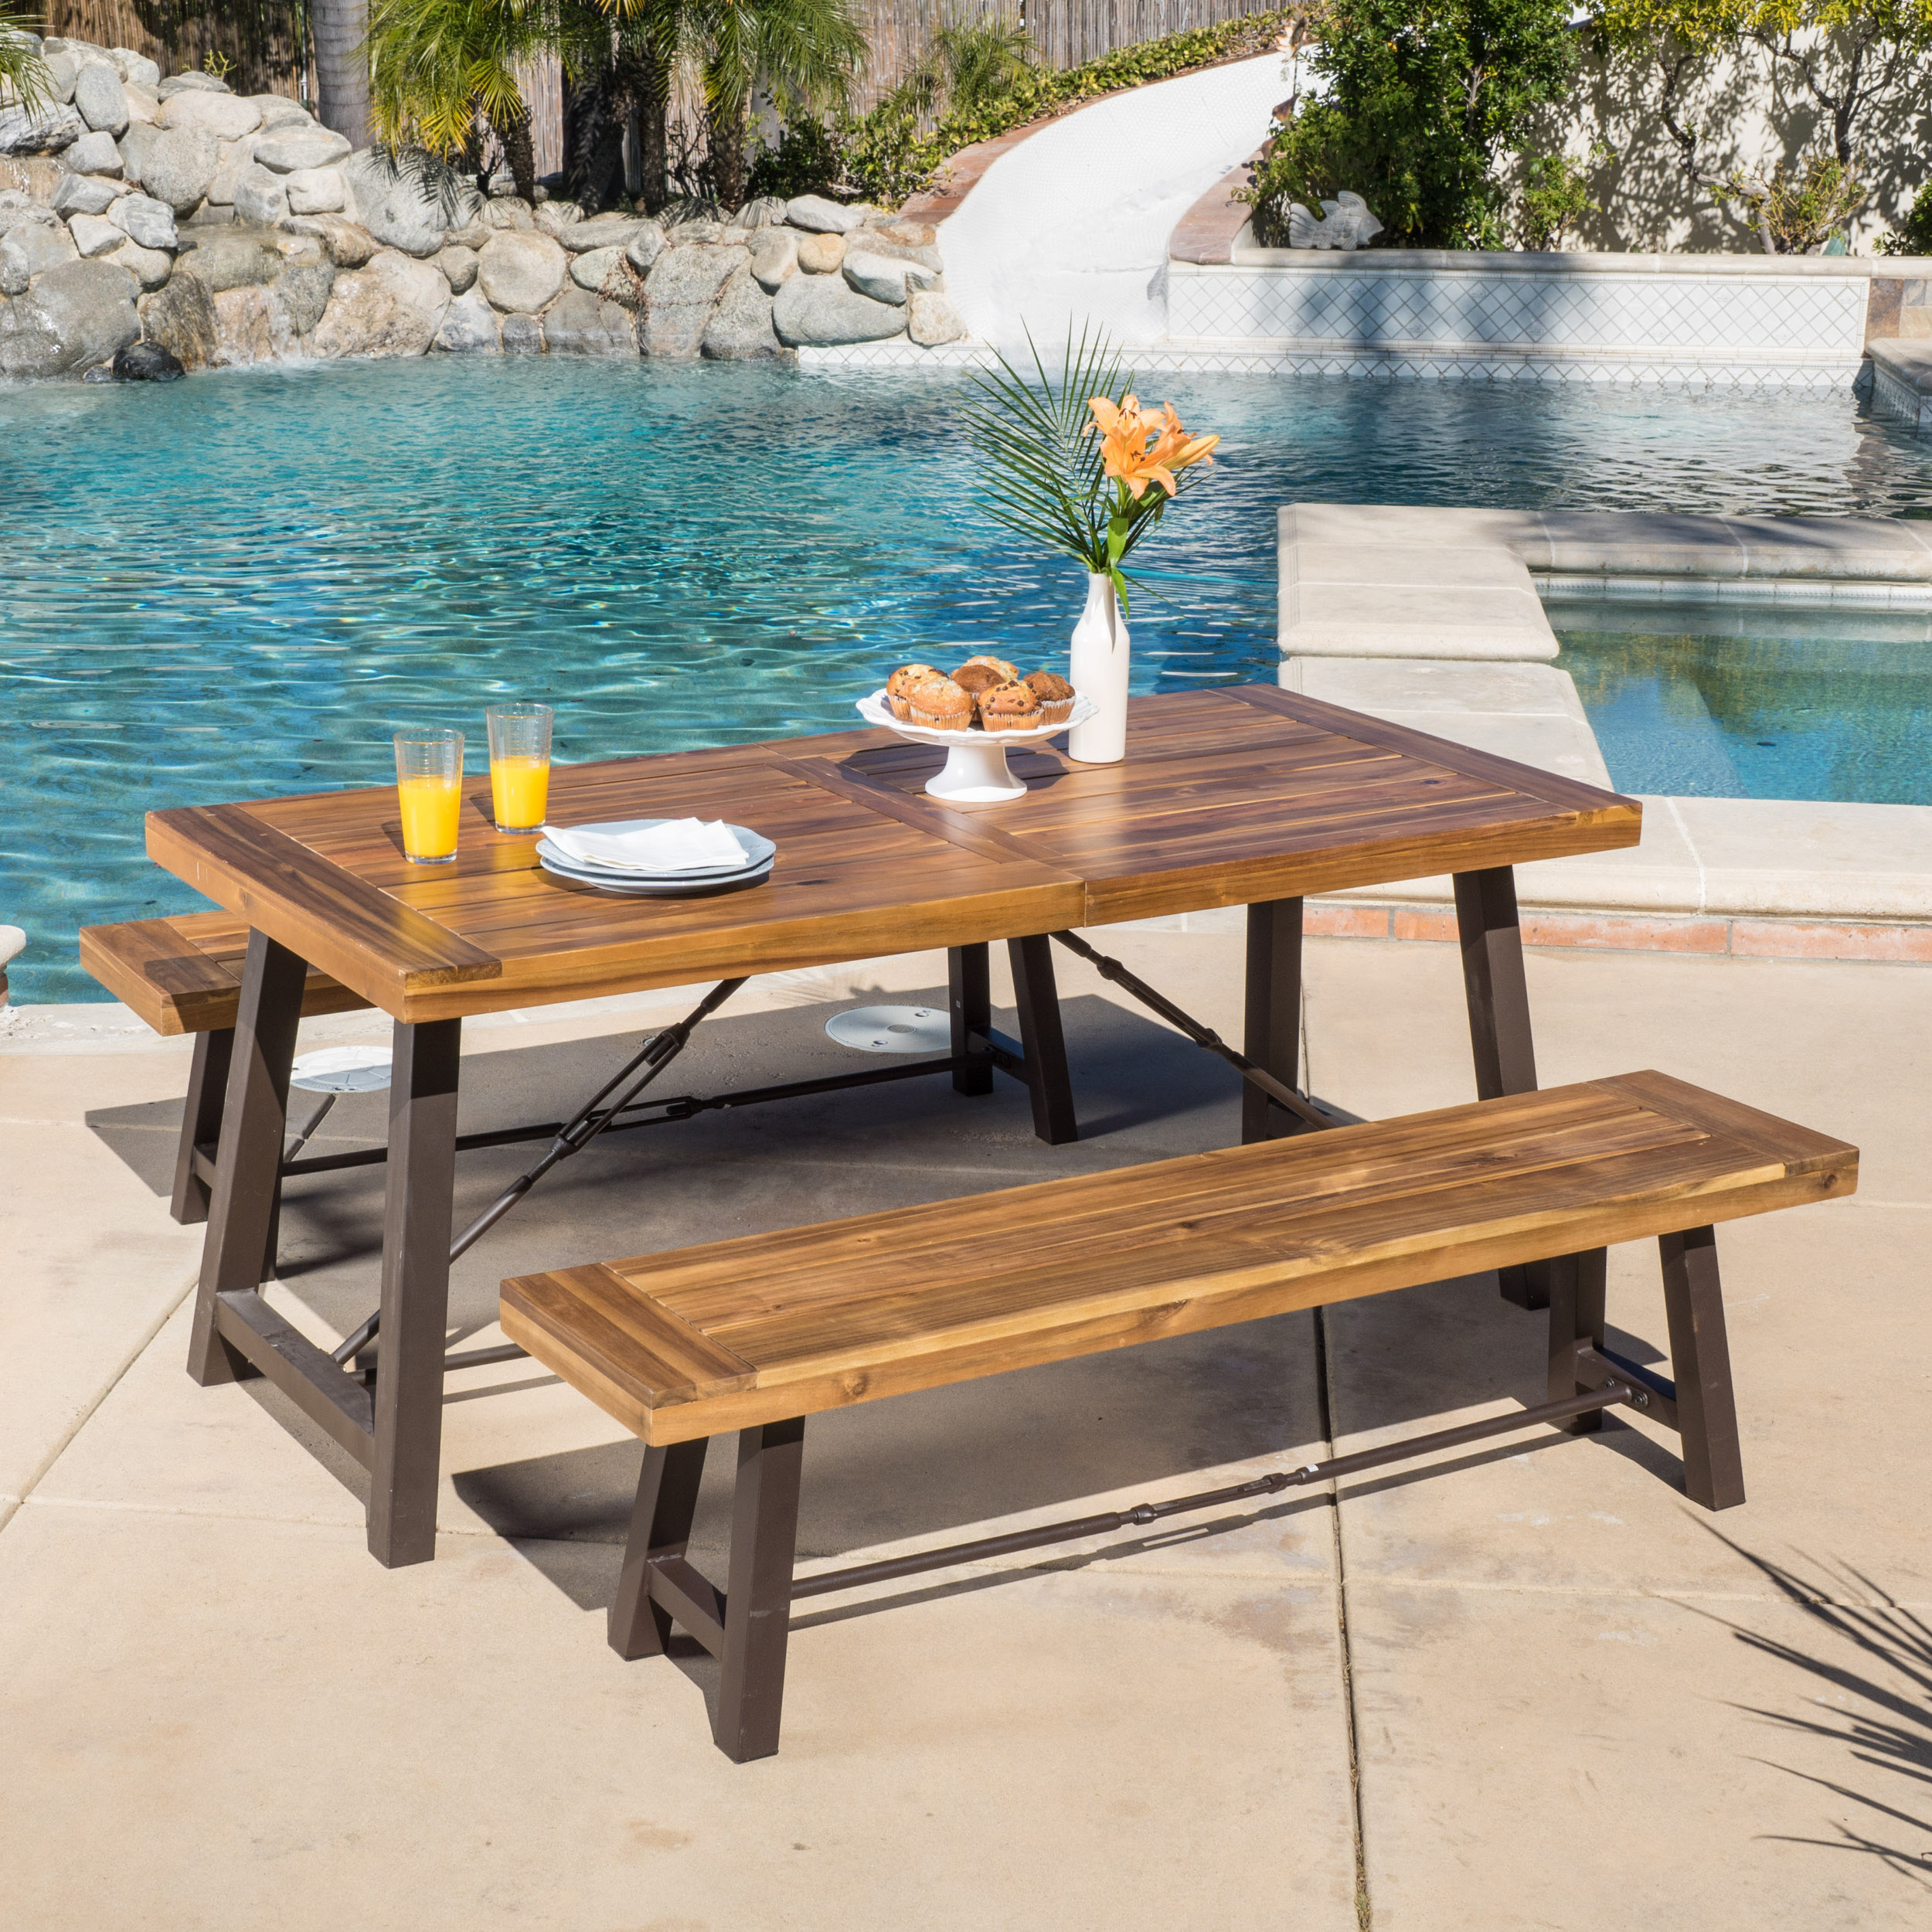 Davidson 3 Piece Outdoor Acacia Wood Picnic Dining Set, Teak Finish